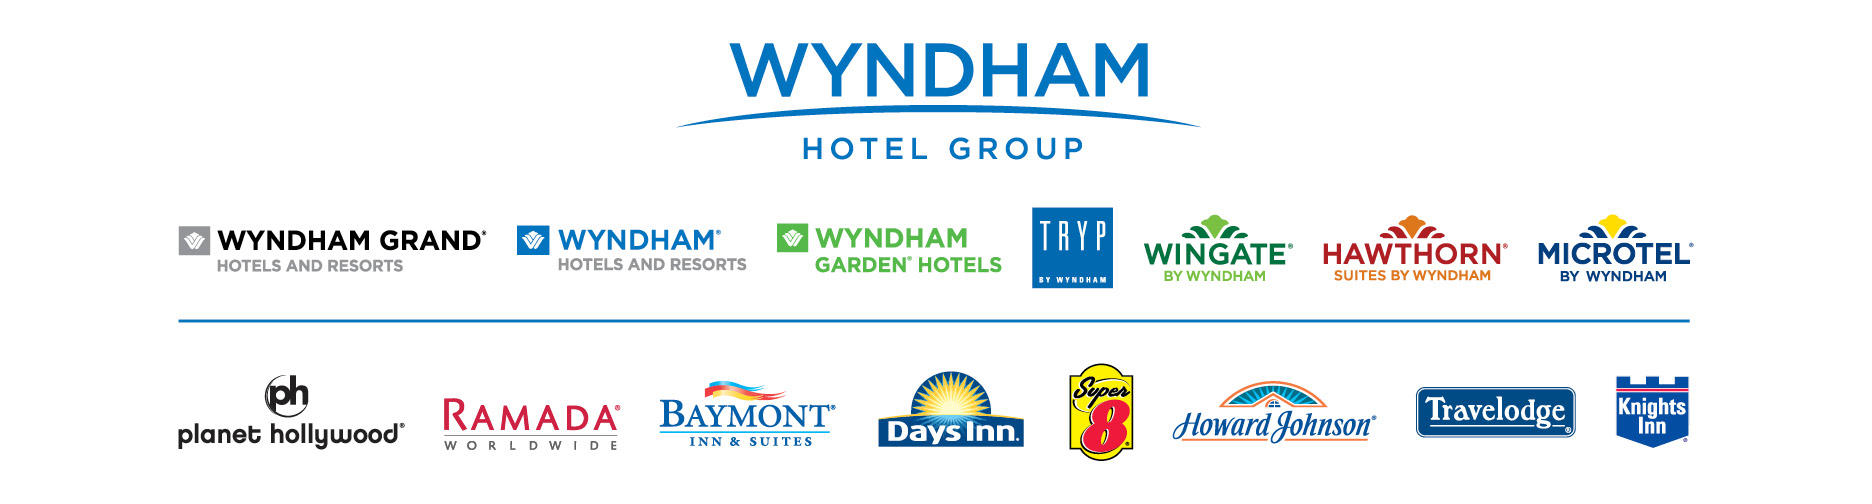 how do the wyndham hotel group and choice hotel group position themselves to compete with one anothe